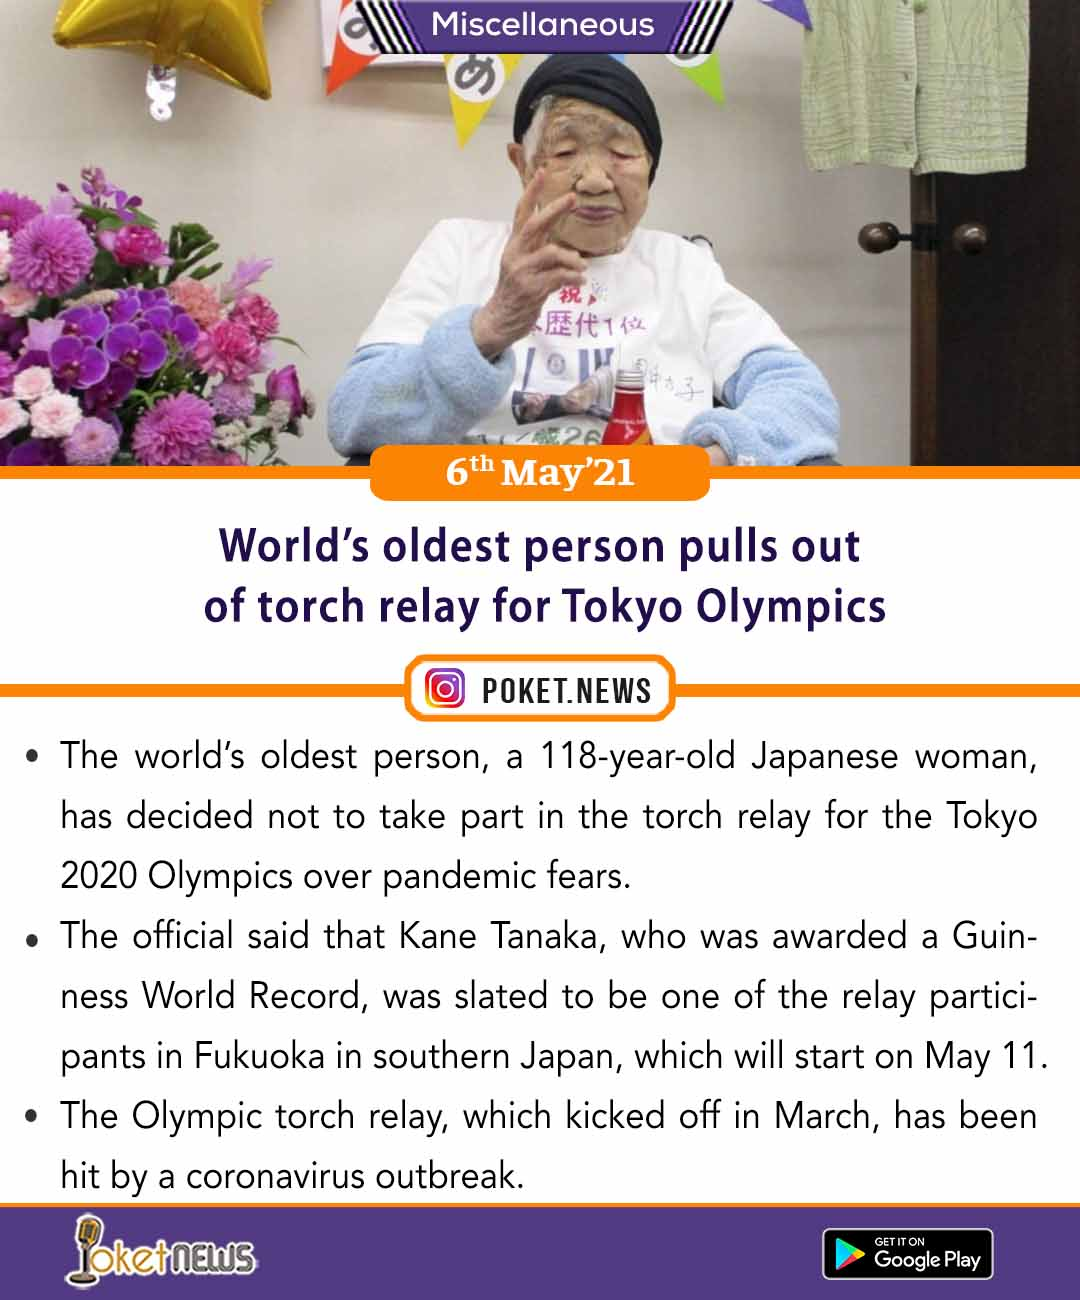 World's oldest person pulls out of torch relay for Tokyo Olympics